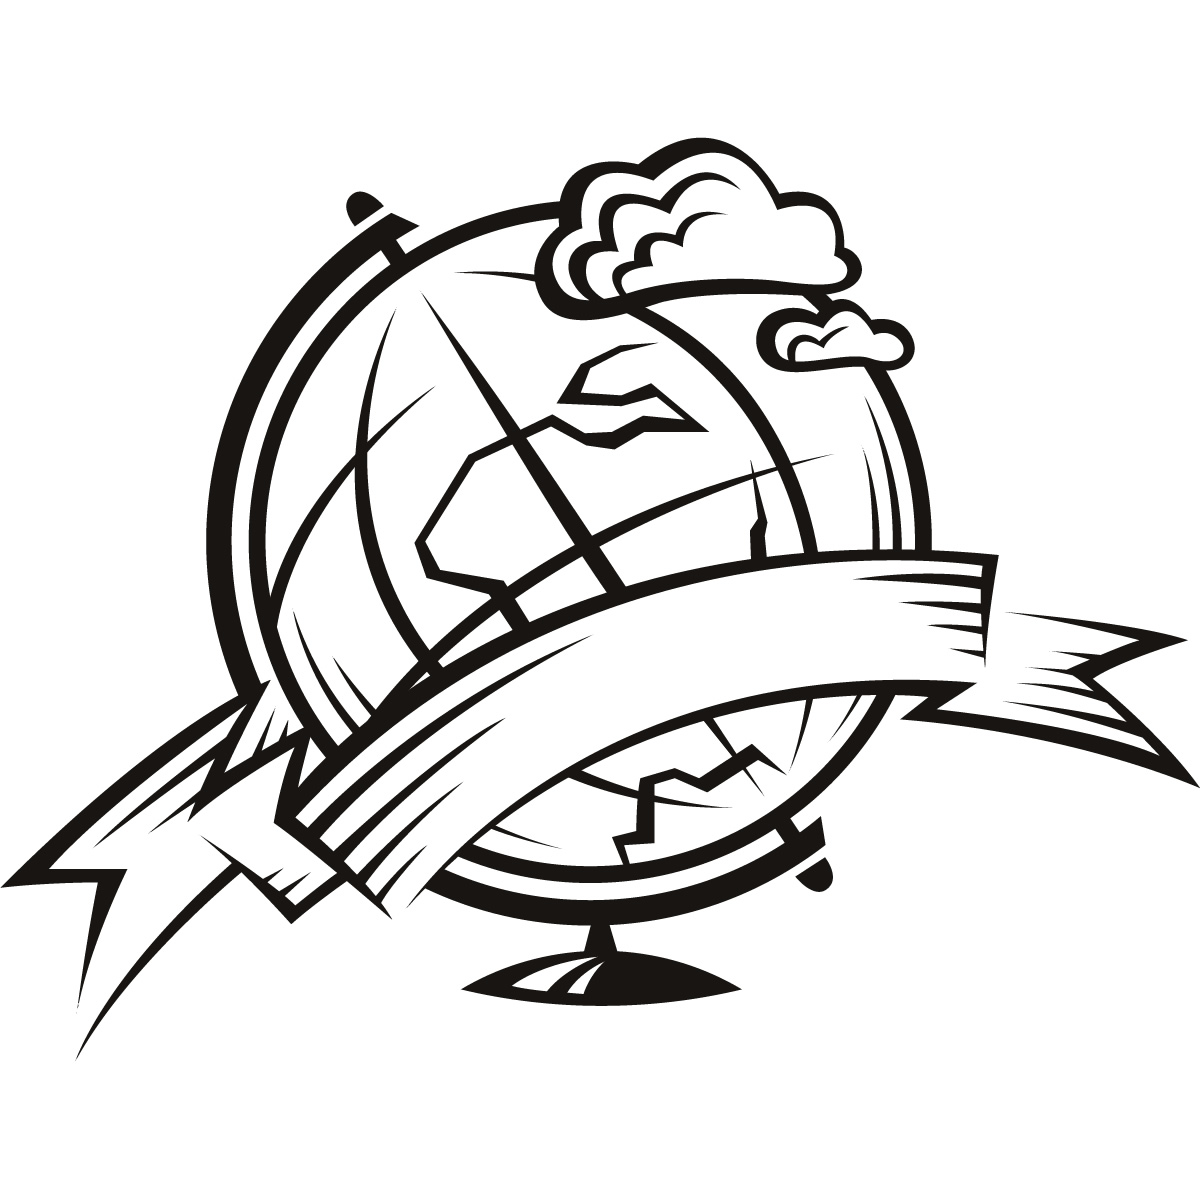 Line Drawing Globe : Globe line drawing clipart best